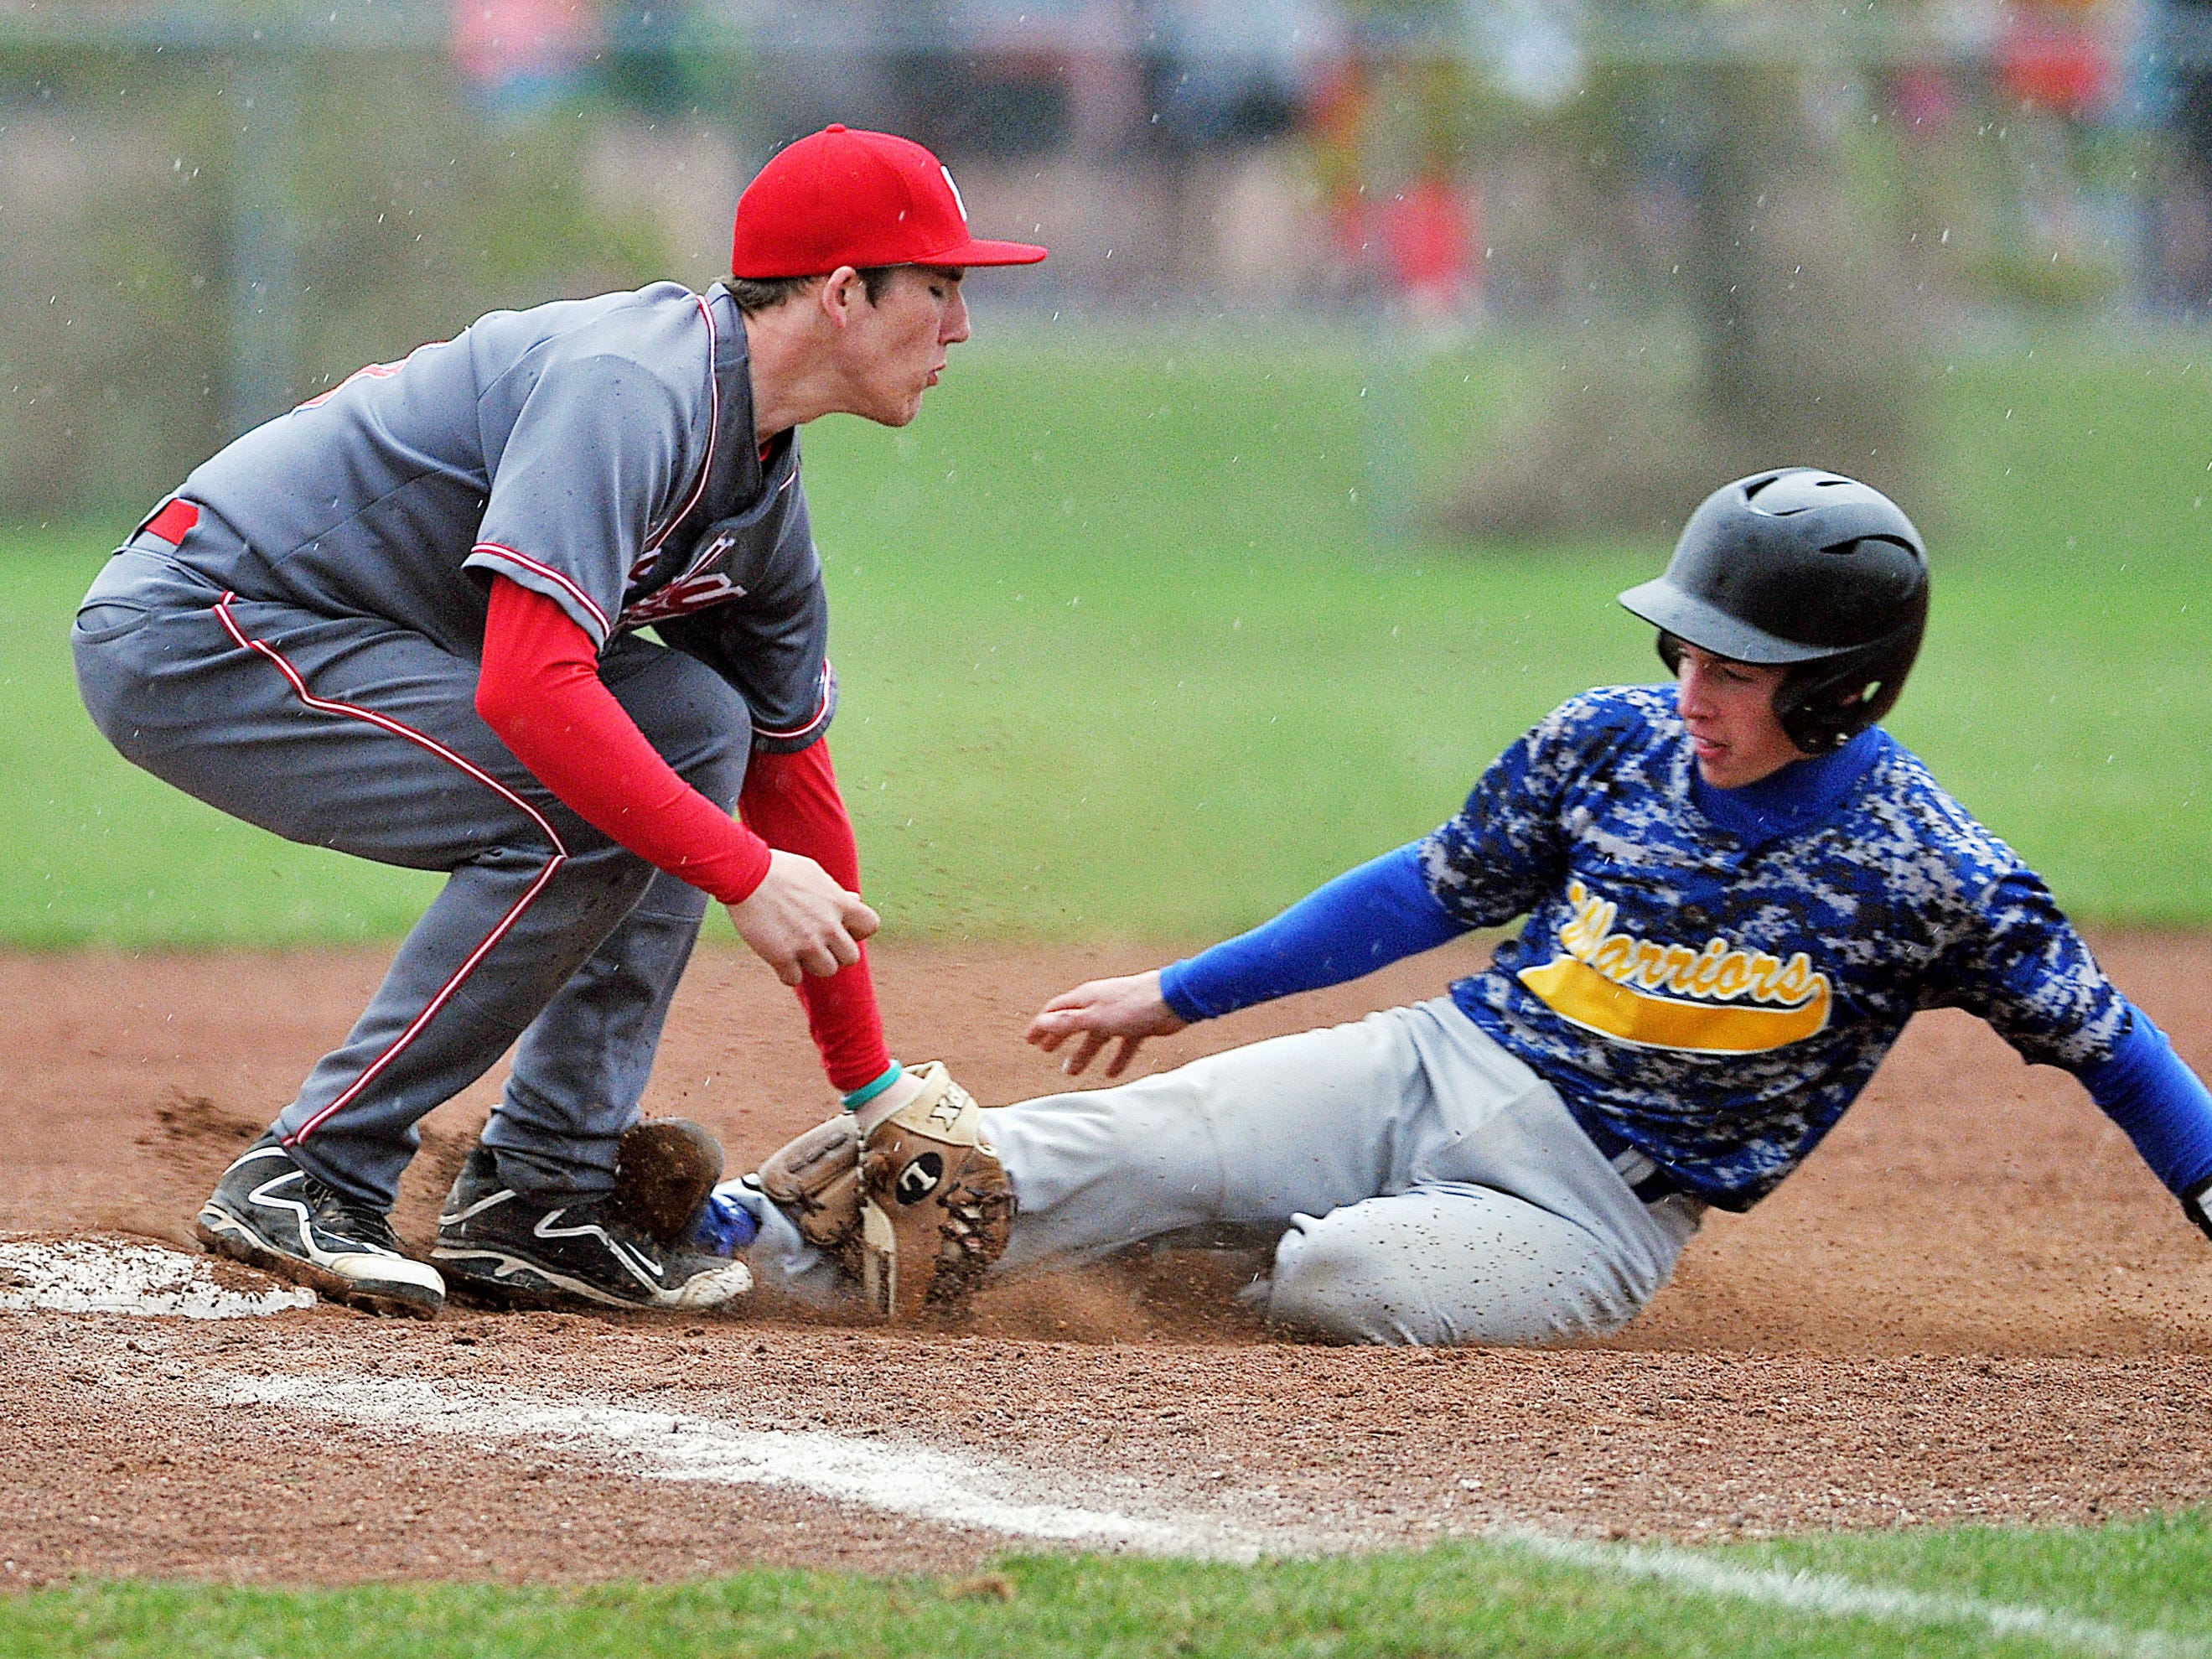 Shelby's Brennan Armstrong blocks the base as Ontario's Taylor Komives attempts a slide during a game Monday at Shelby. Komives was allowed the base.